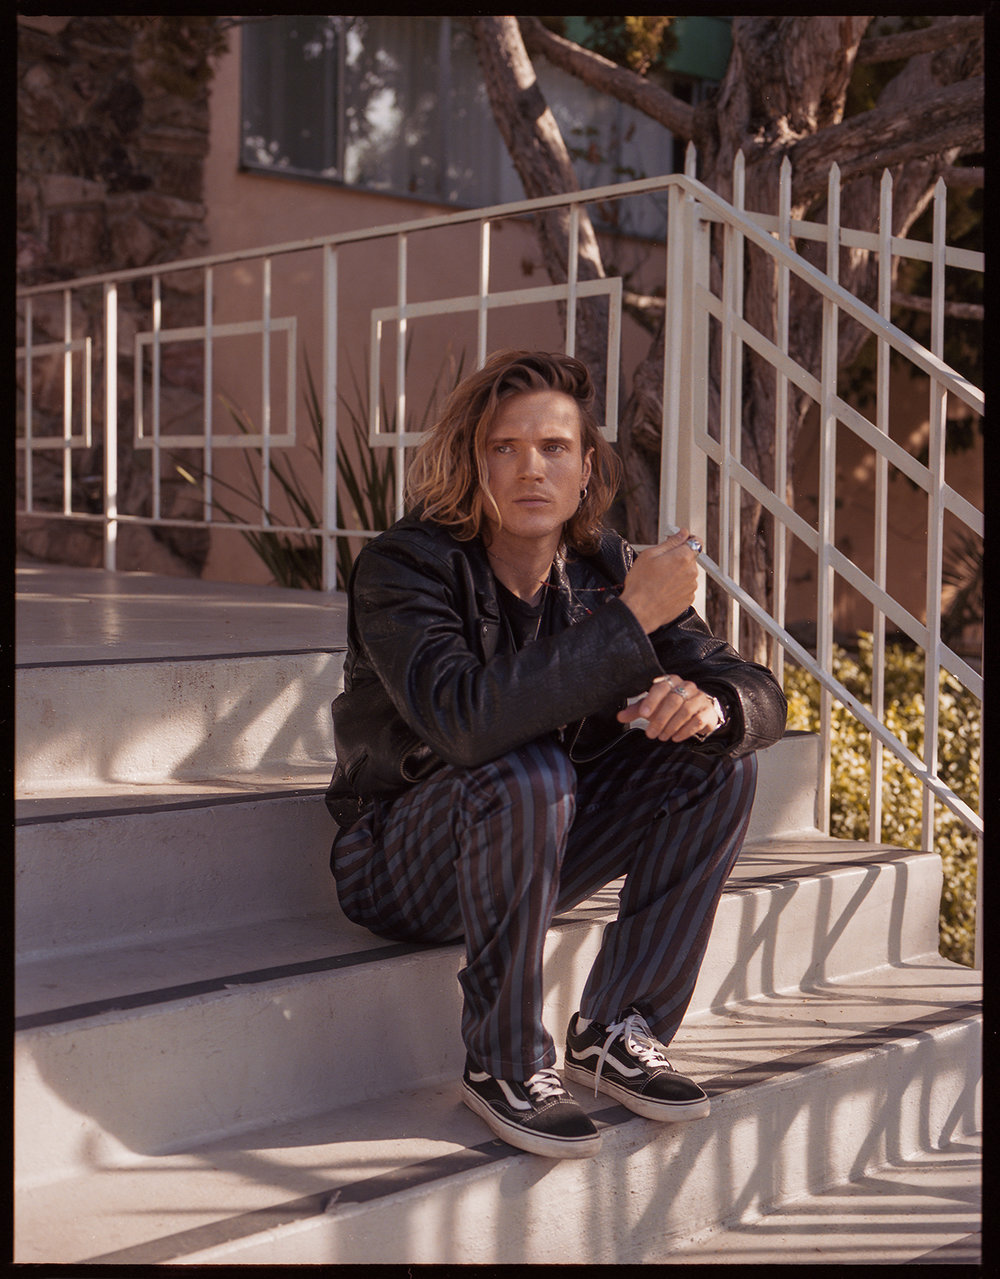 Dougie Poynter photographed in Los Angeles for Damaged Magazine